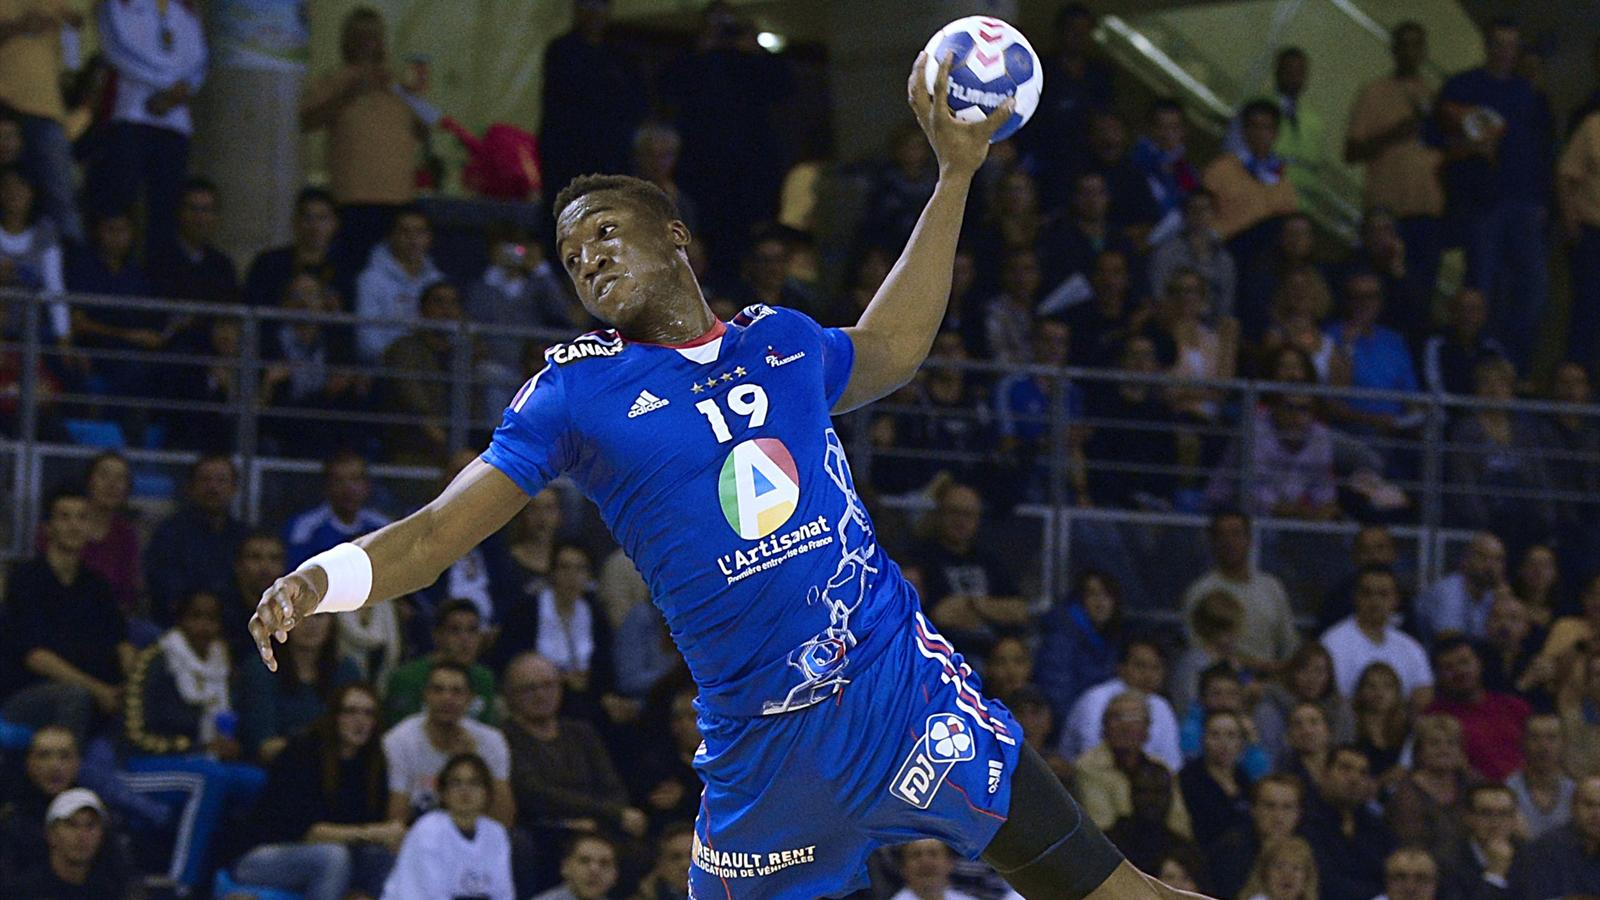 Video abalo guigou girault top 20 les plus grands joueurs de l 39 quipe de france de 20 - Calendrier coupe du monde handball ...